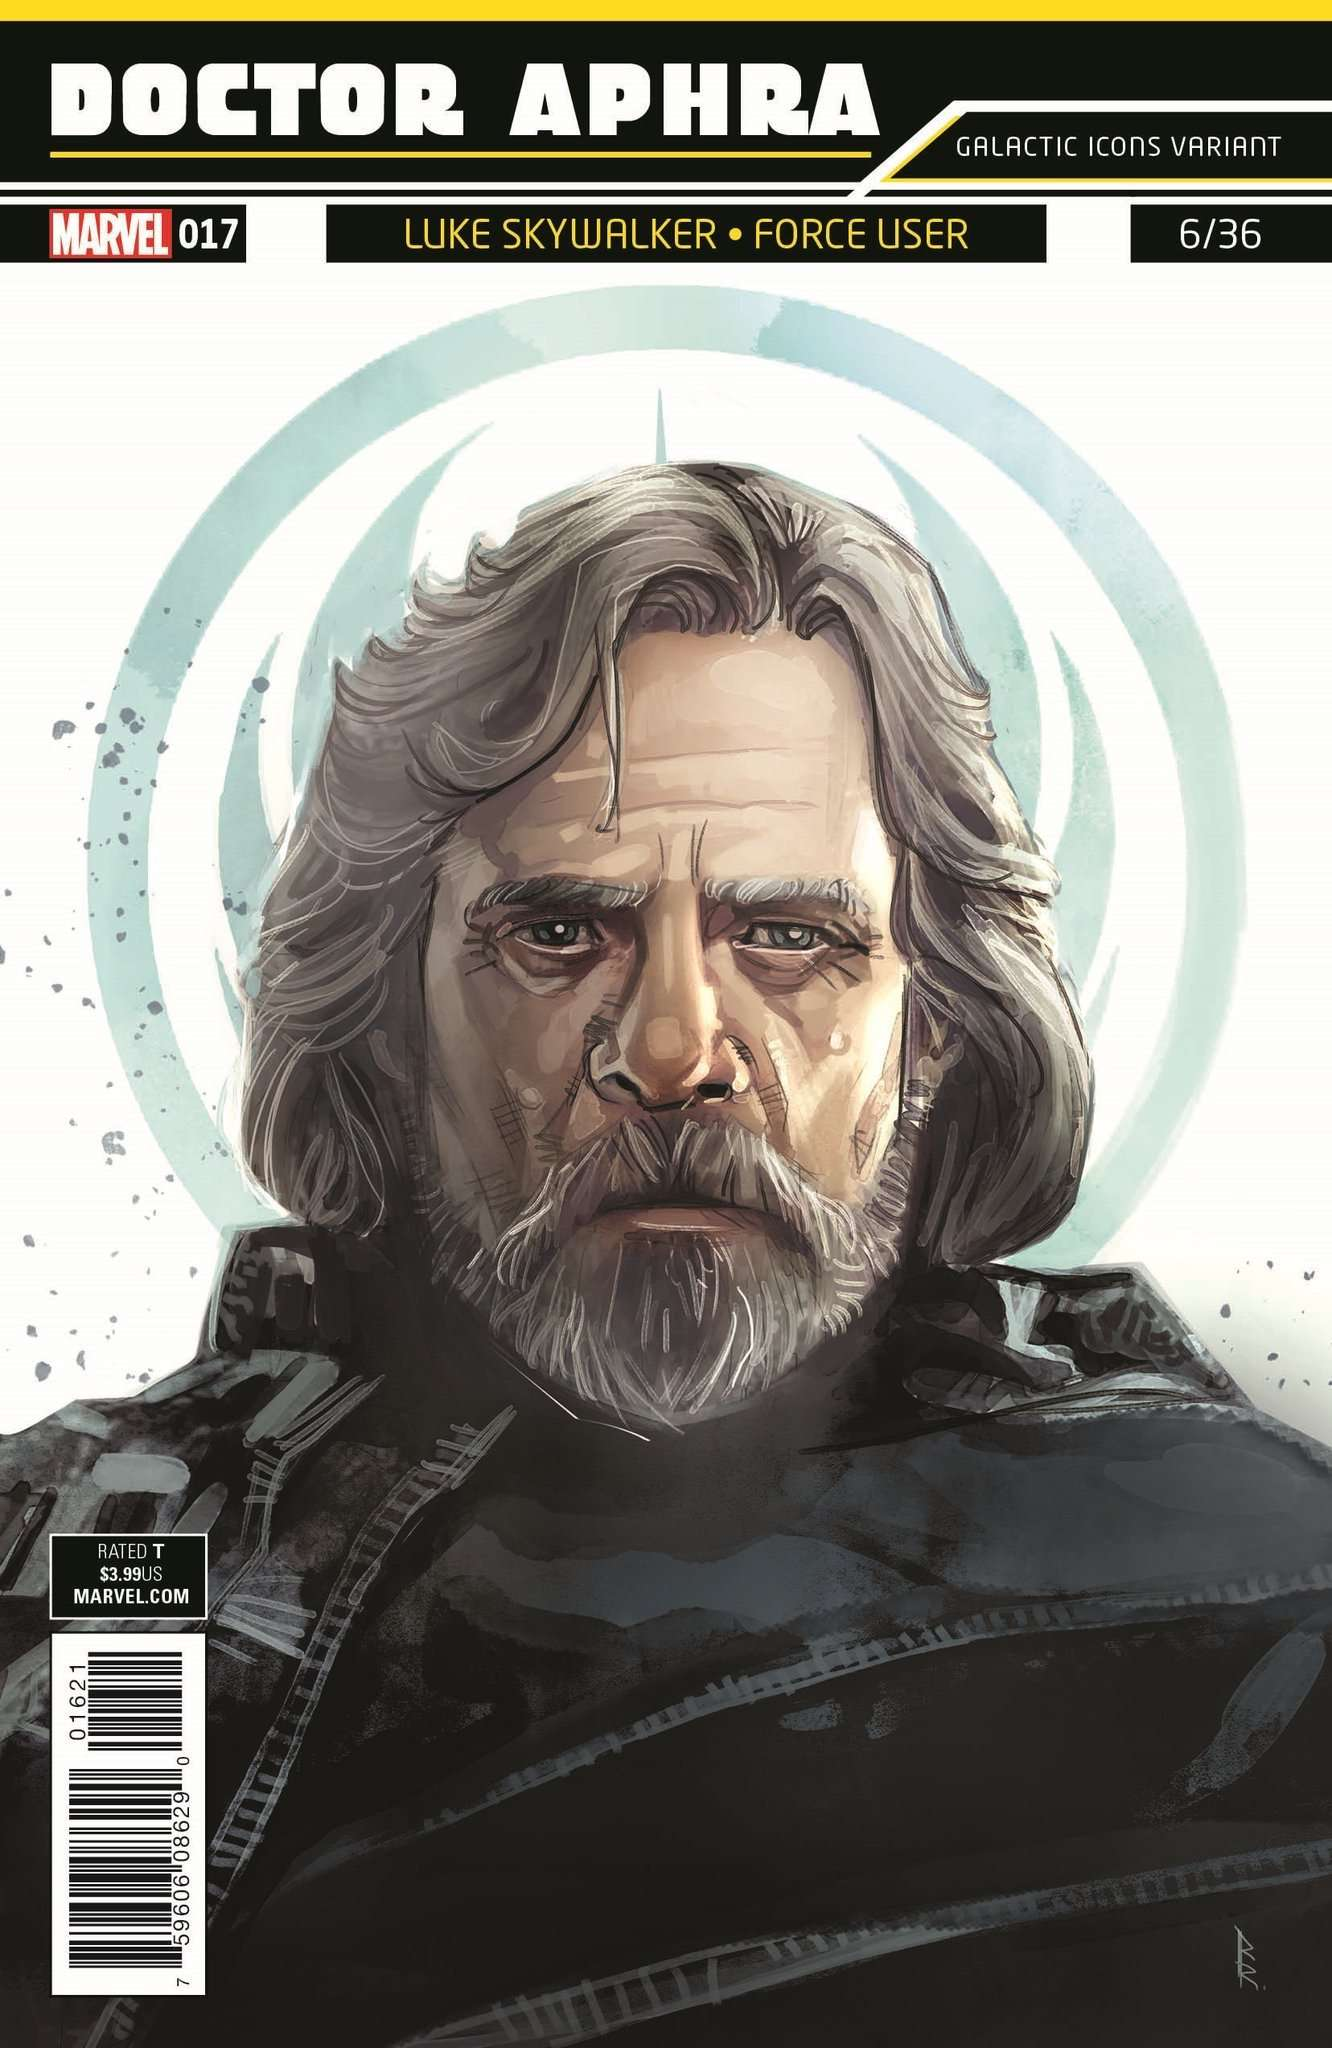 Marvel Star Wars Galactic Icons Variant Covers Checklist